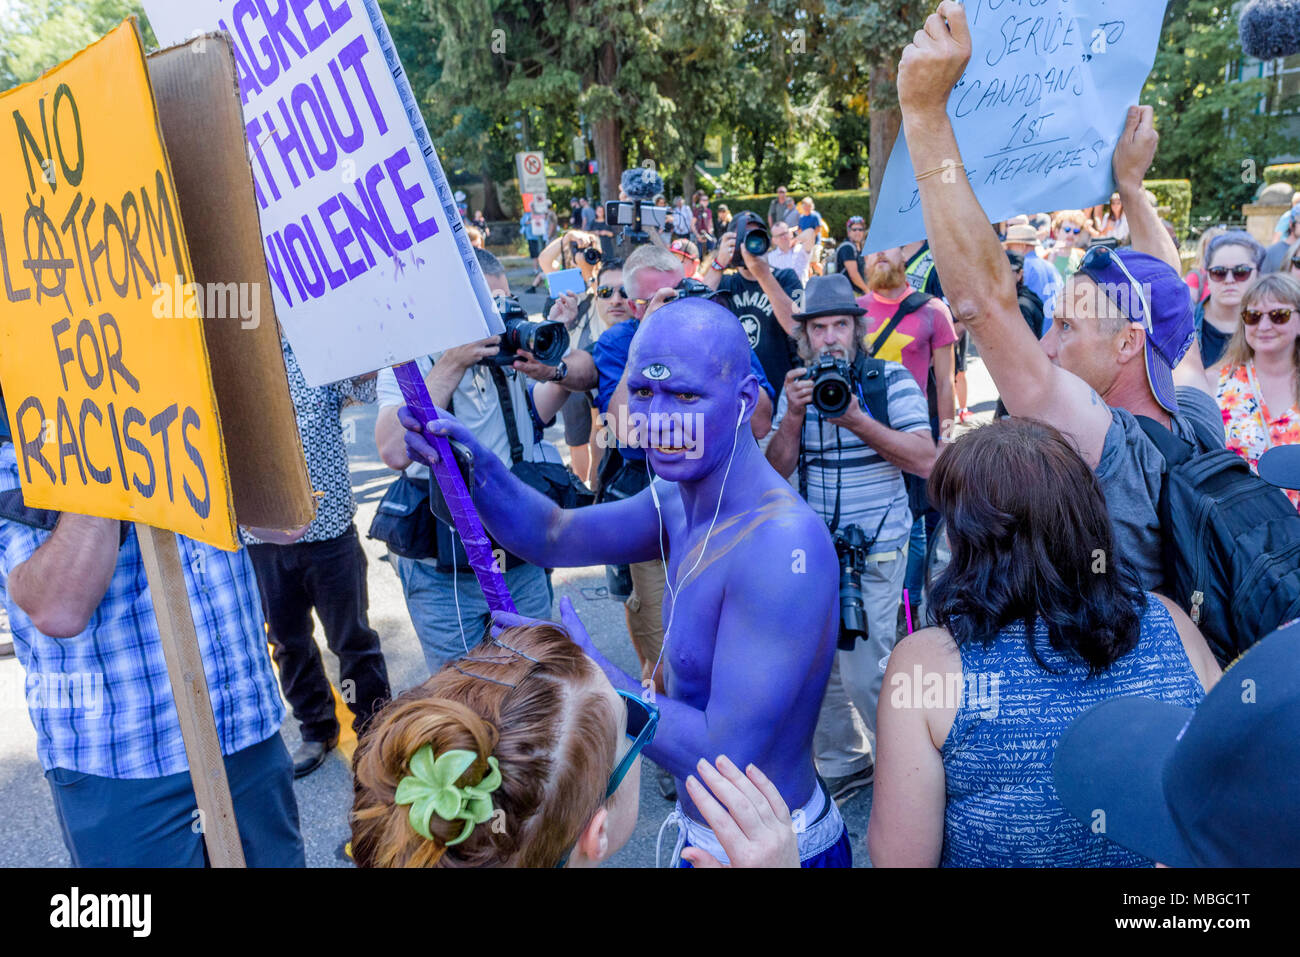 Man with third eye and blue body paint at Anti-Racism Rally, City Hall, Vancouver, British Columbia, Canada. - Stock Image